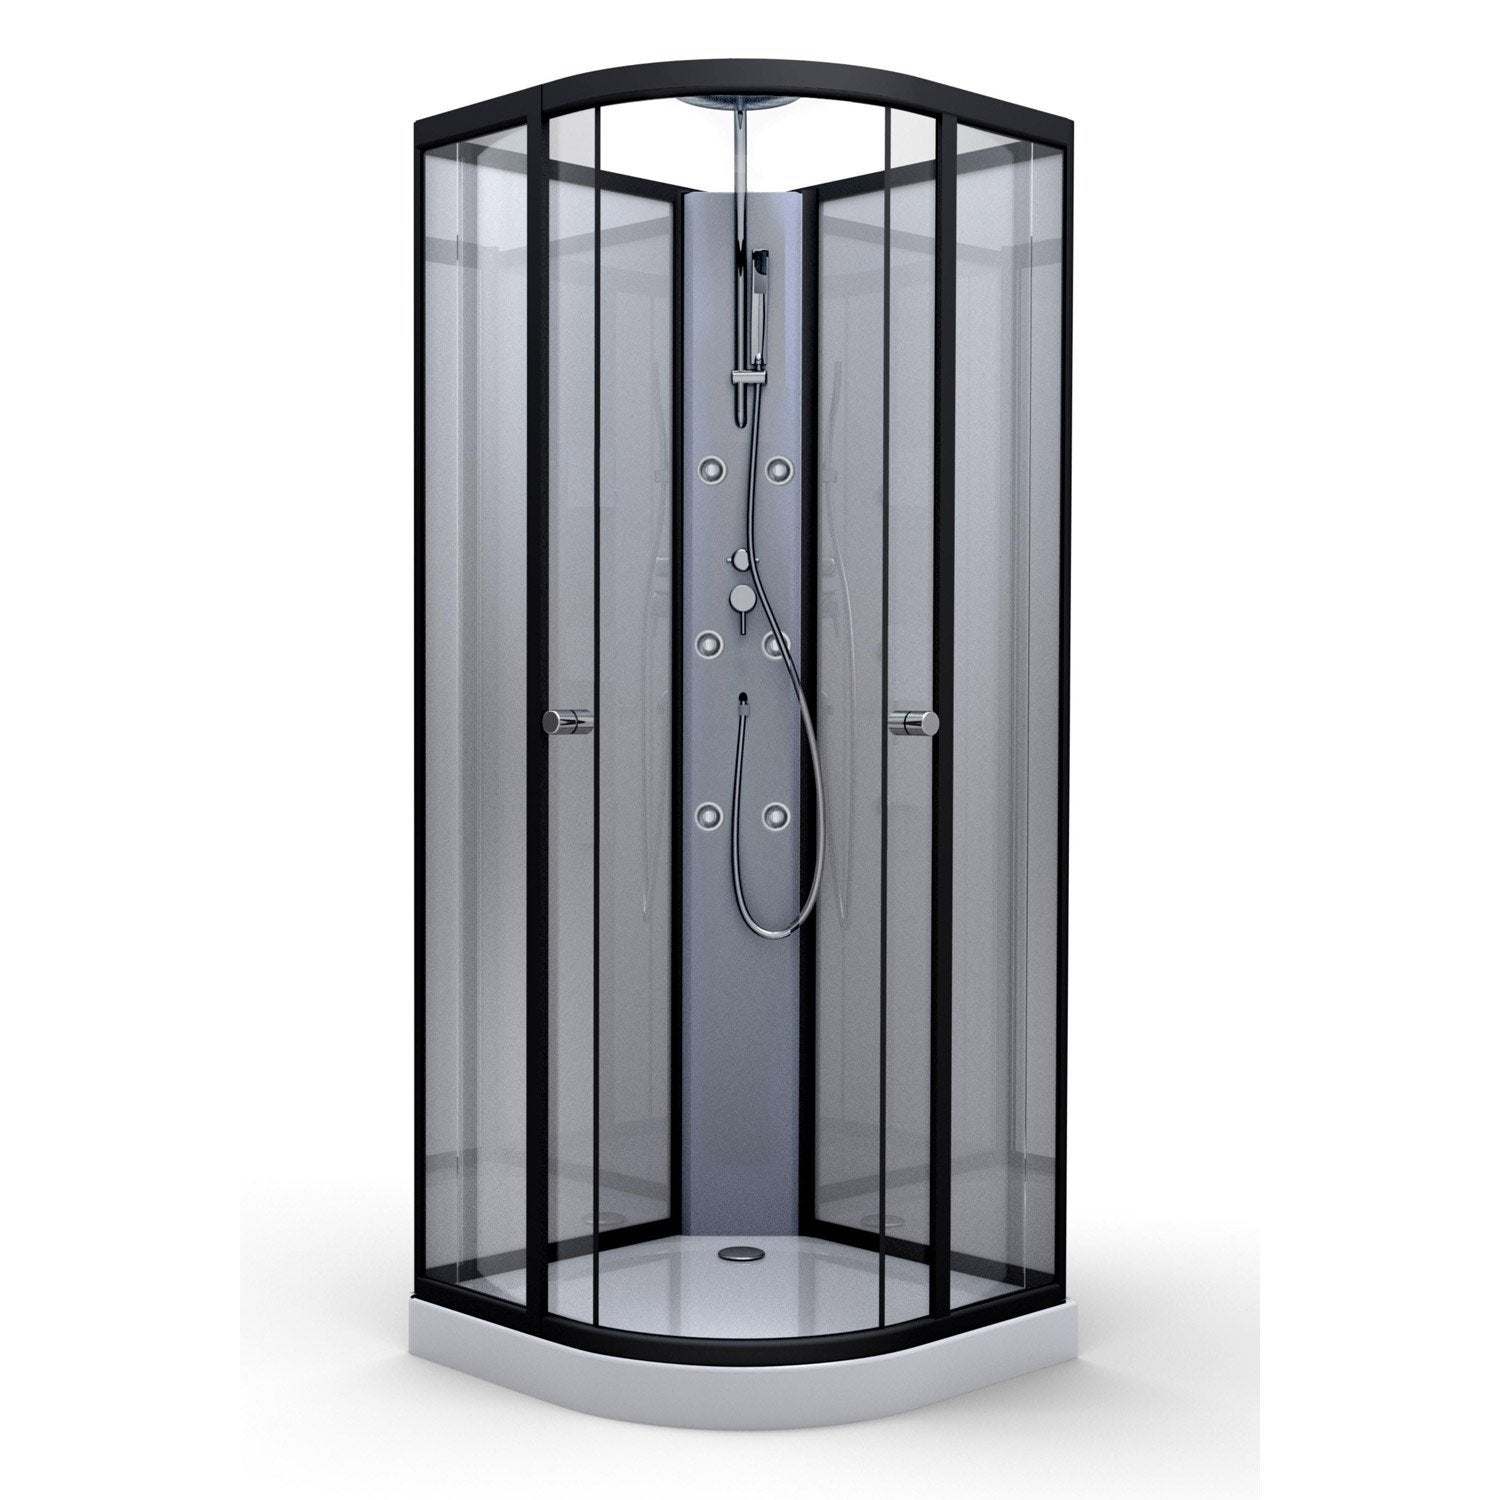 cabine de douche 75x75 avec leroy merlin brico depot. Black Bedroom Furniture Sets. Home Design Ideas